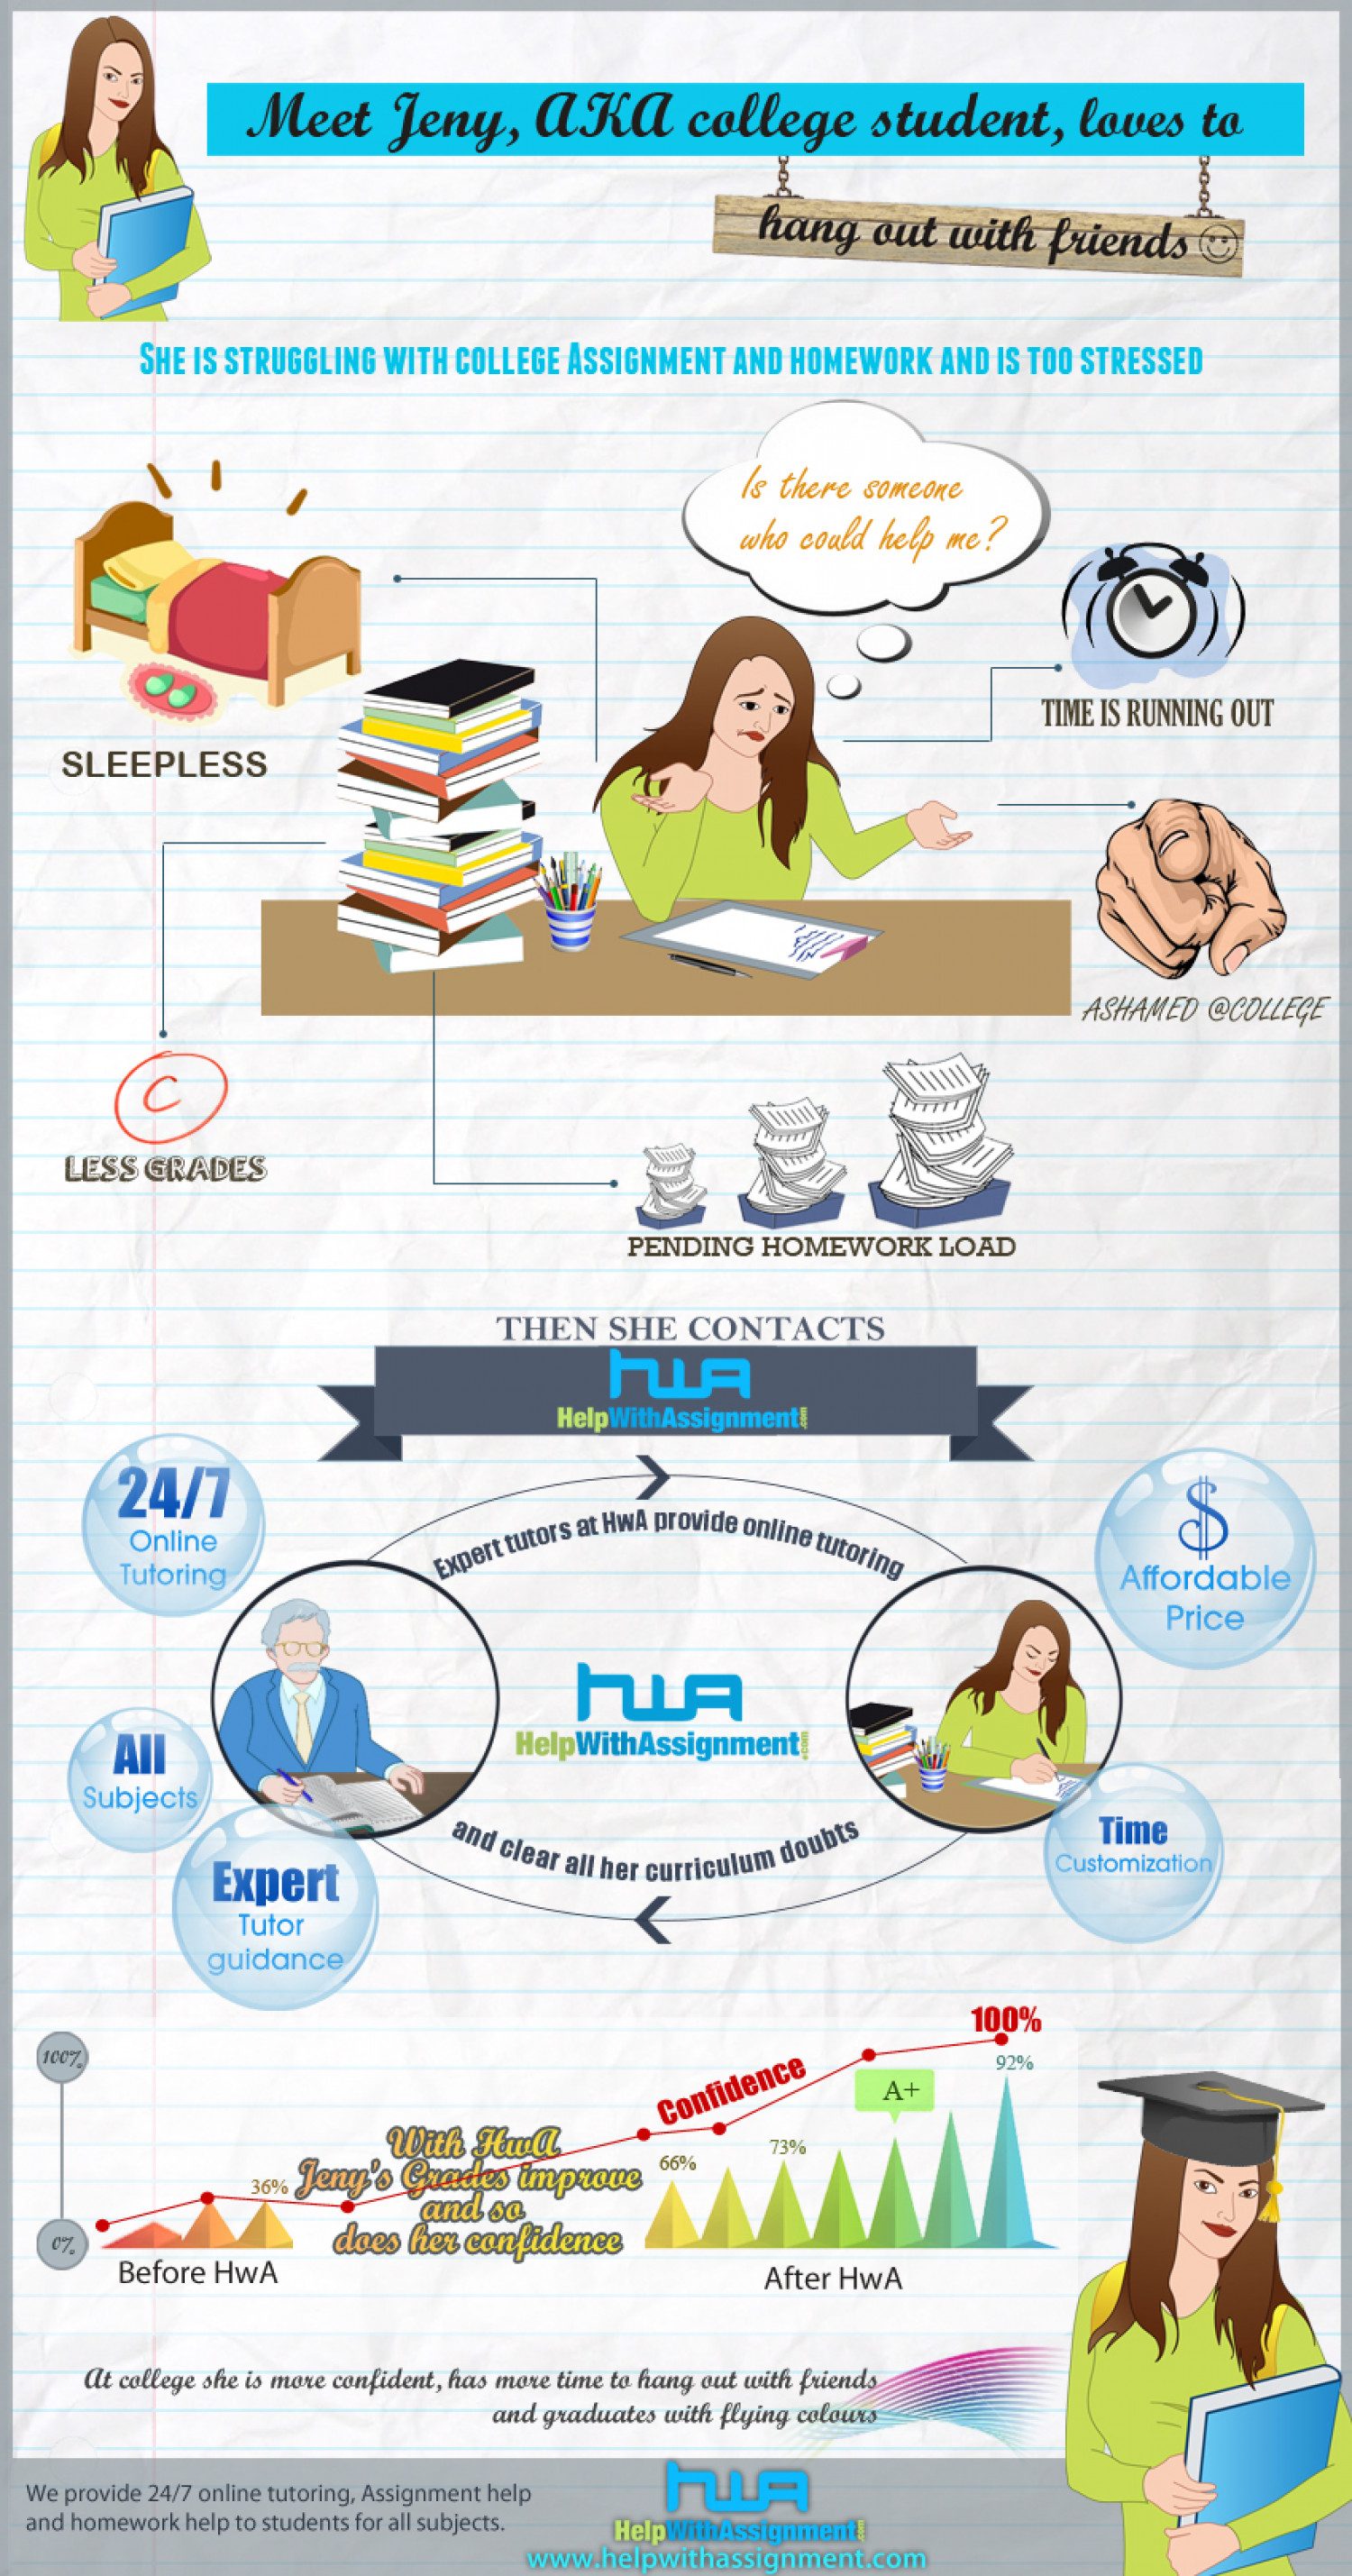 Online Tutoring improves grade Infographic